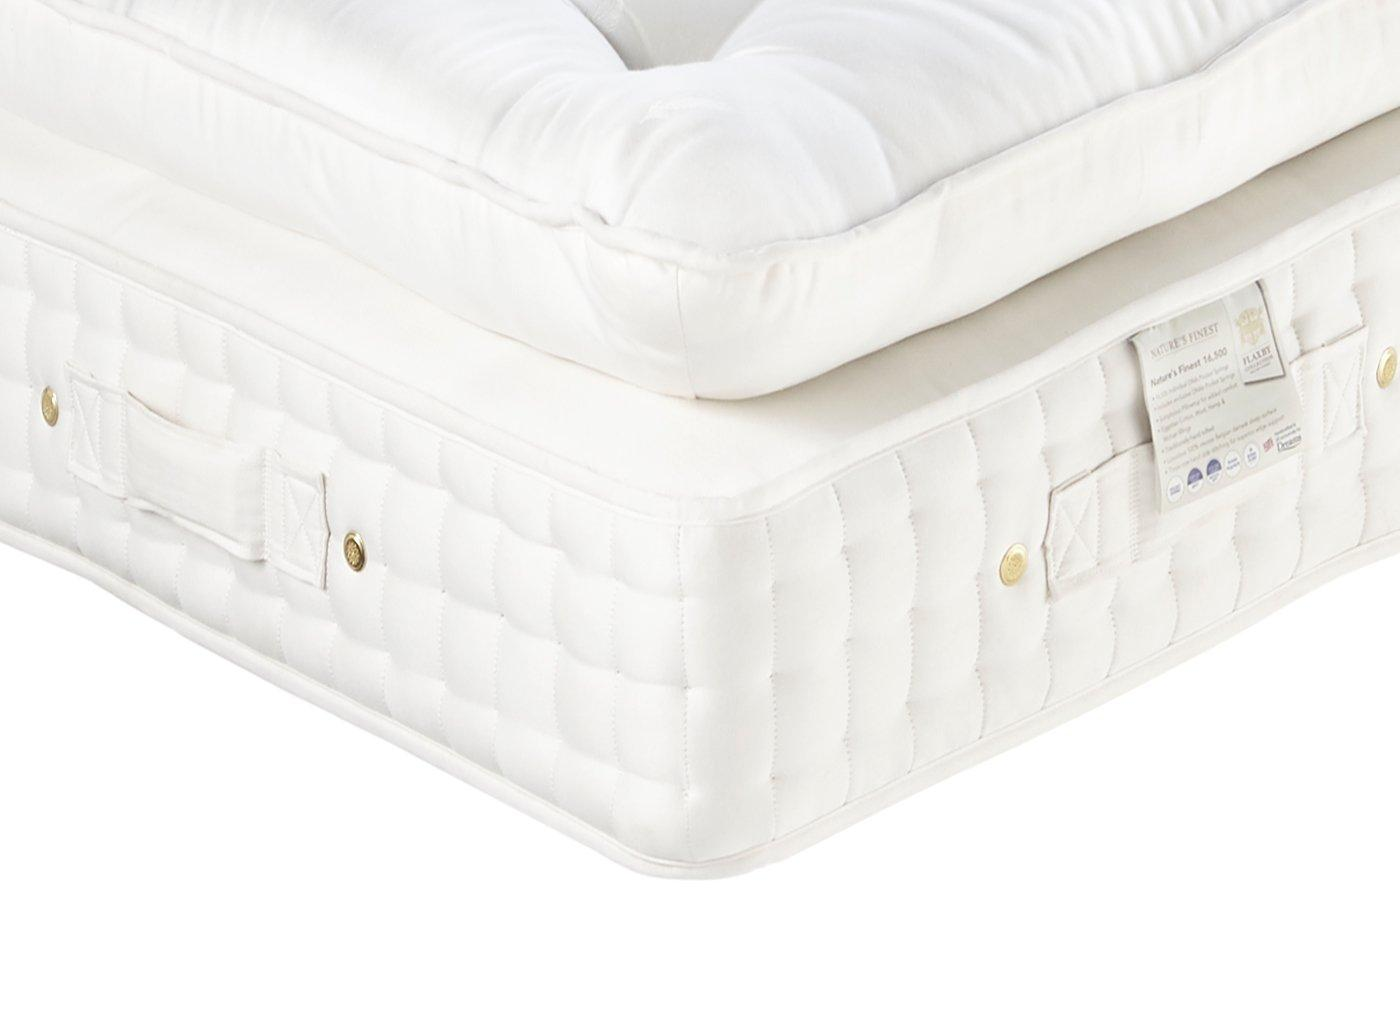 Flaxby Natures Finest 16500 Dnair Mattress - Soft / Medium Soft 4'6 Double